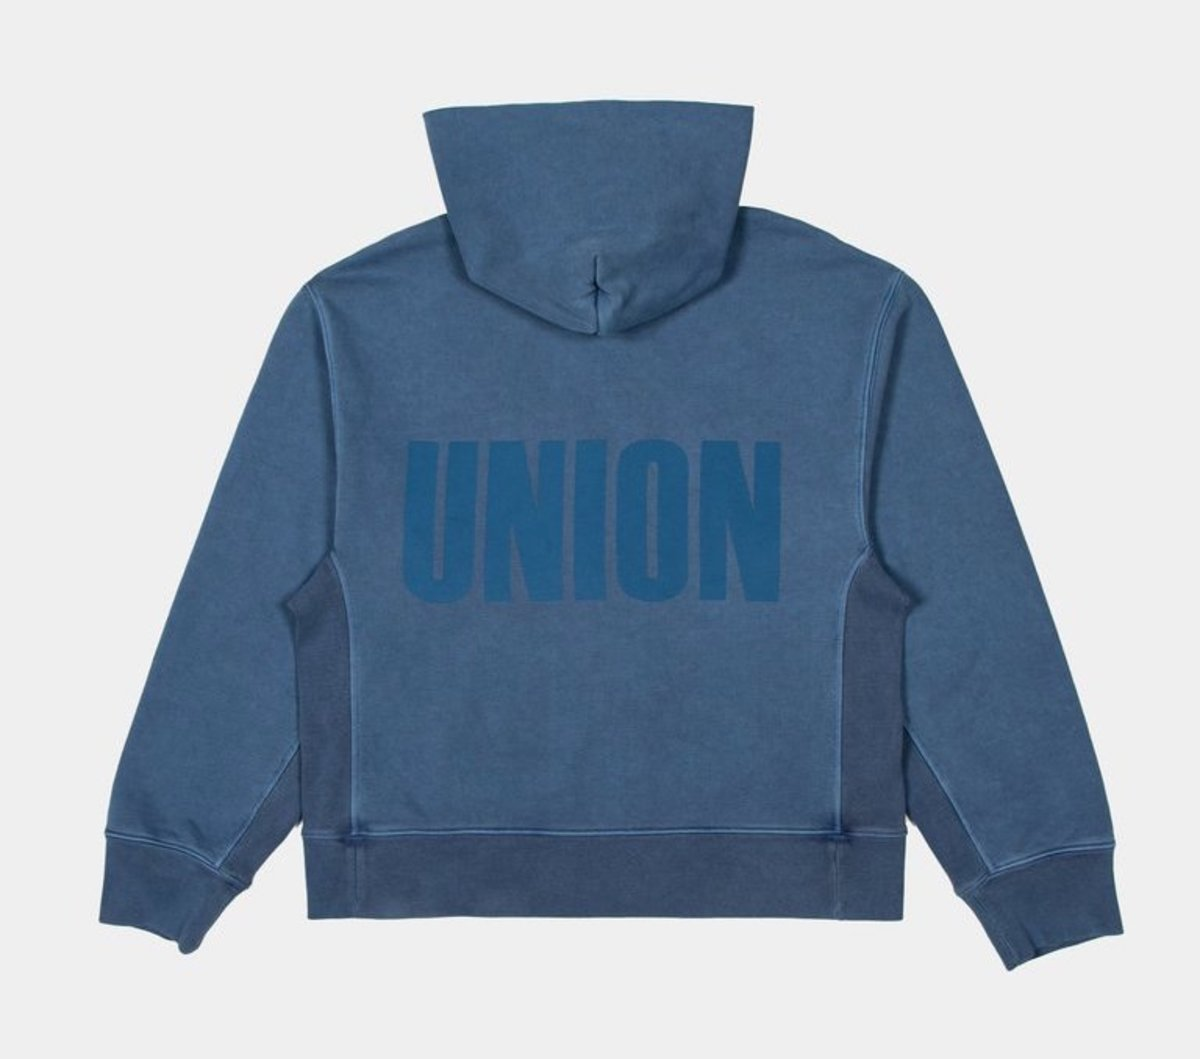 union_los_angeles_elevated_fleece_hooded_sweatshirt_blue_main_004_1024x1024